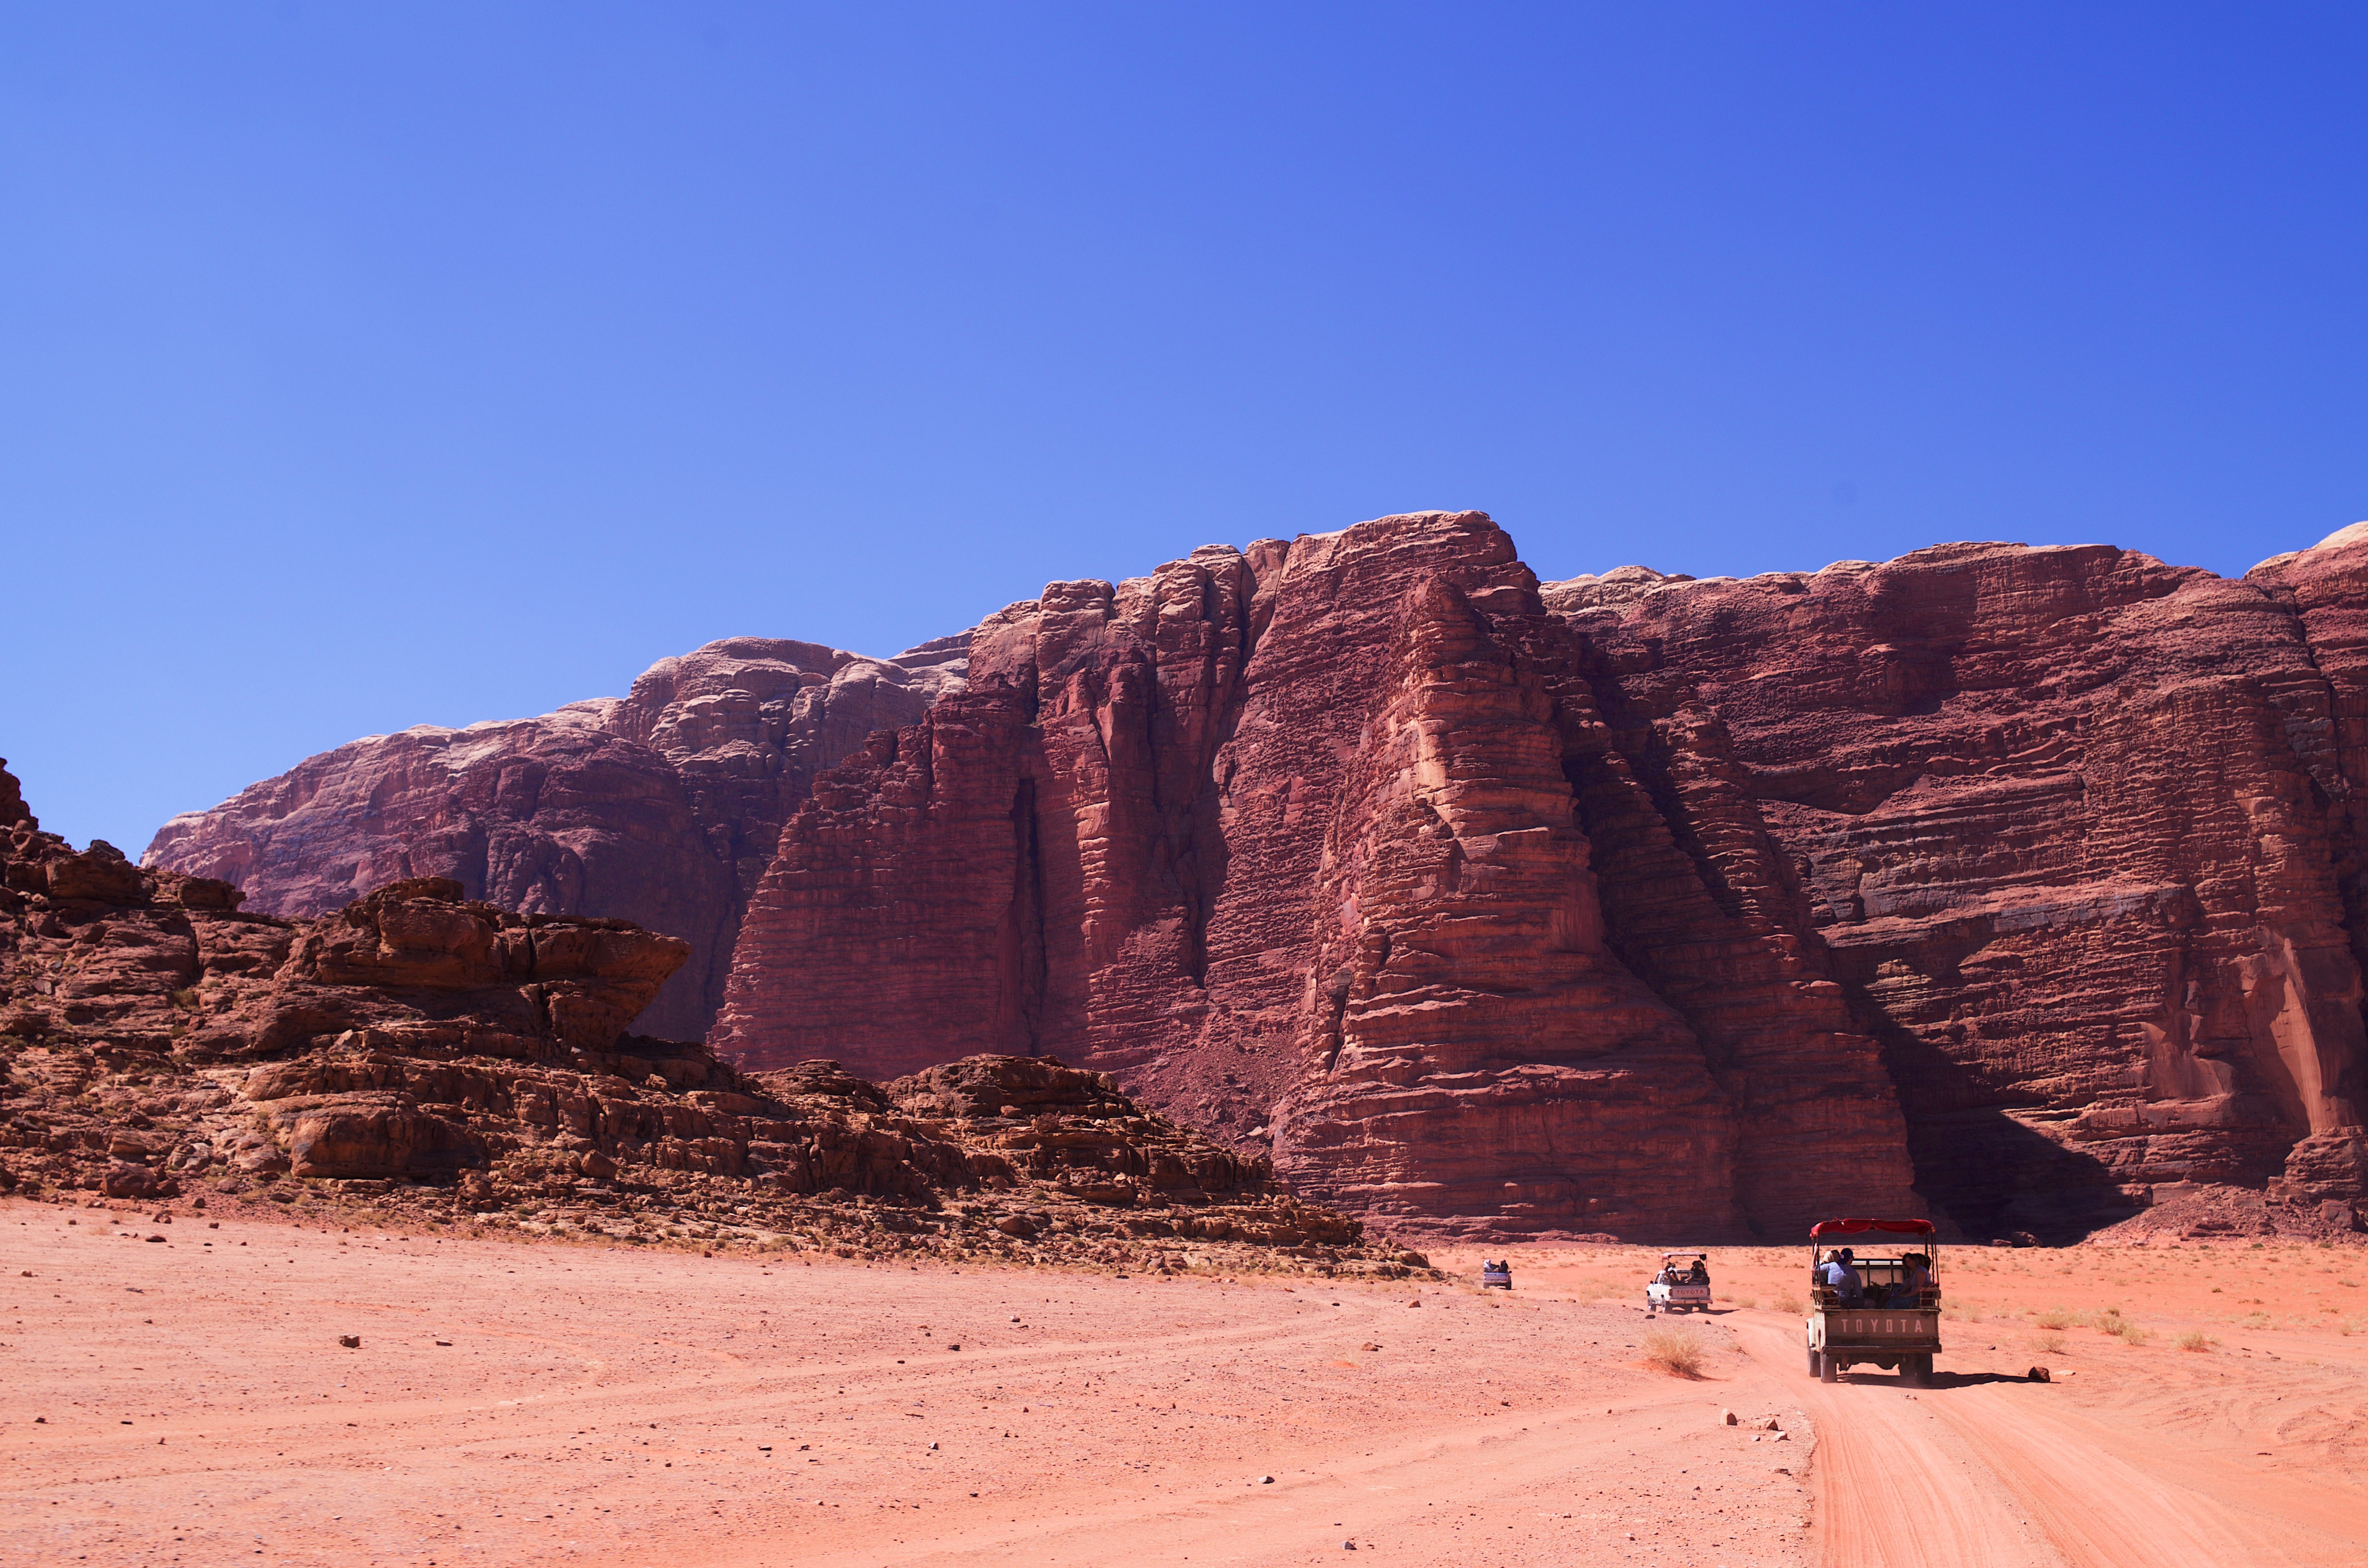 Tourists ride toward rocky cliffs in the desert of Wadi Rum Protected Area